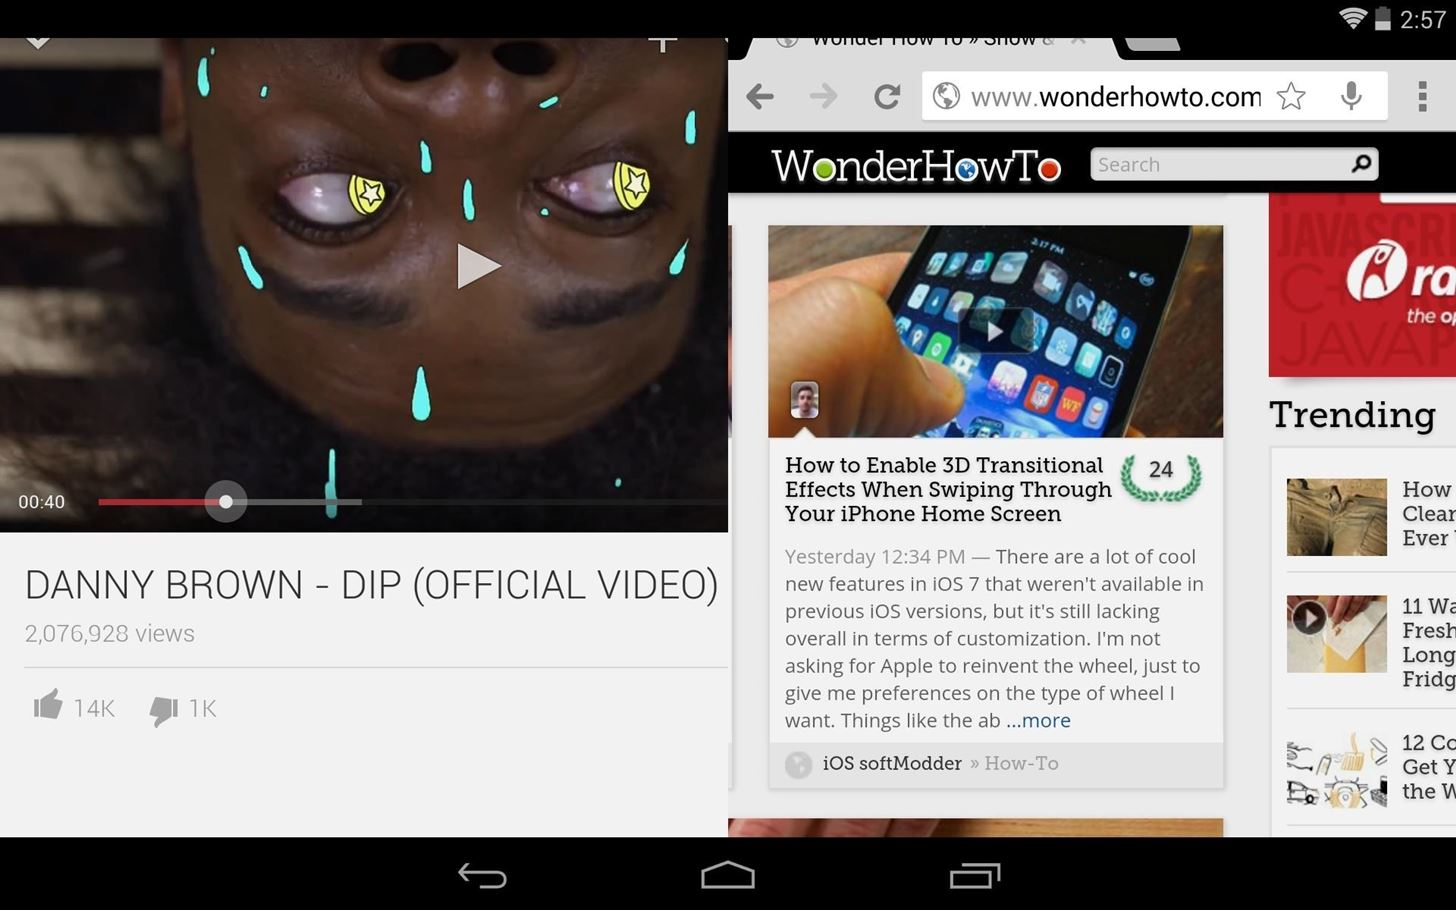 Split Screen Multitasking: How to Run 2 Apps in Separate Windows on Your Nexus 7 Simultaneously